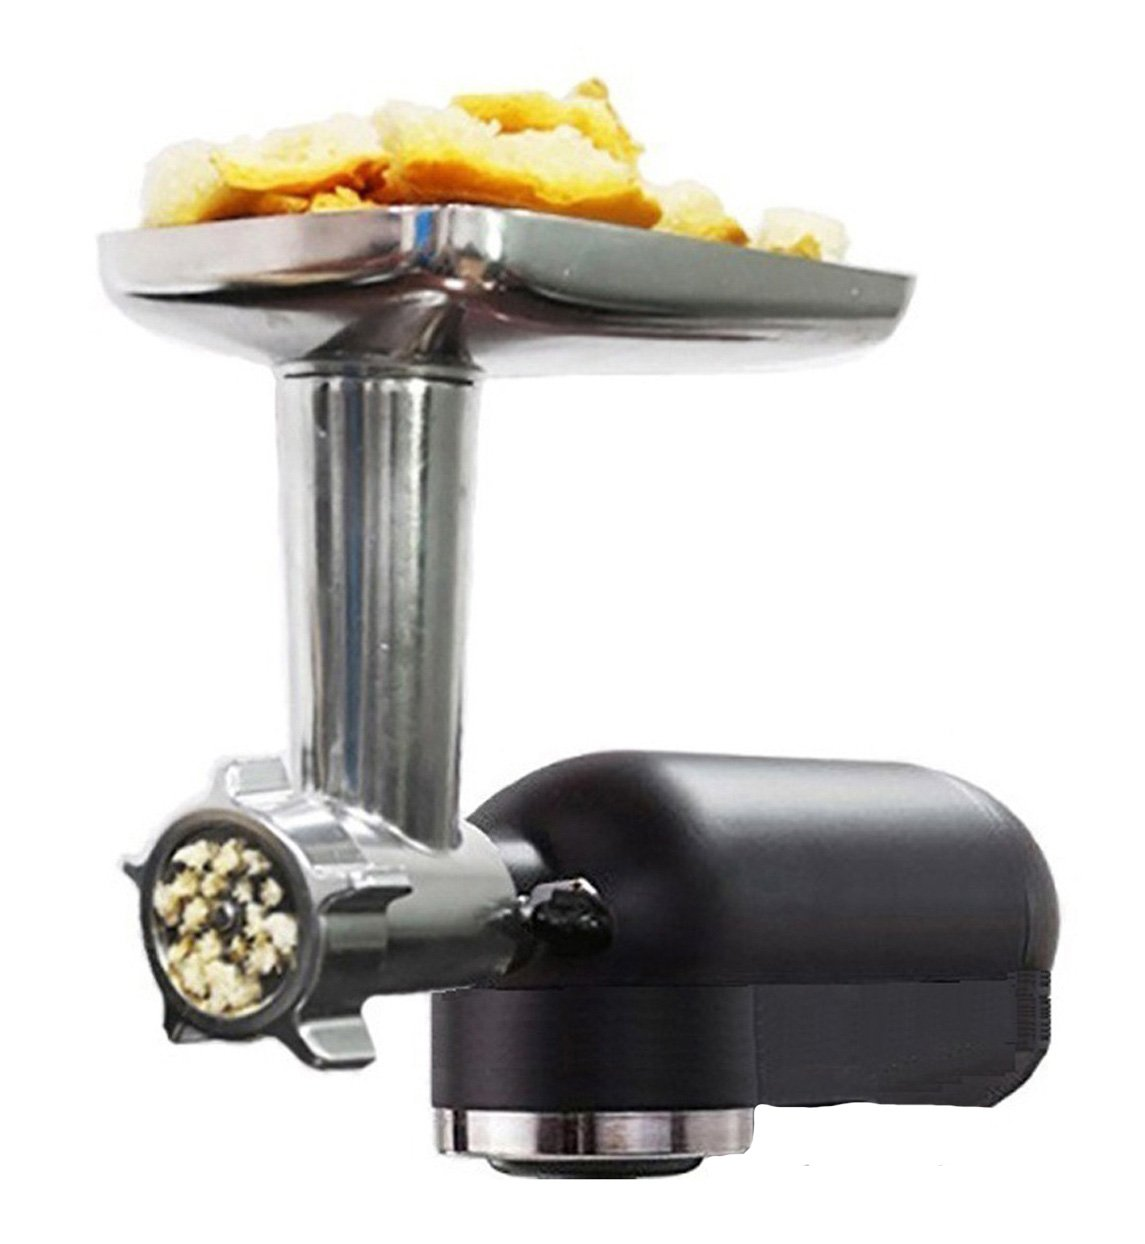 Gvode Food Grinder Attachment Work with KitchenAid Stand Mixers Including Sausage Stuffer Accessory by GVODE (Image #2)